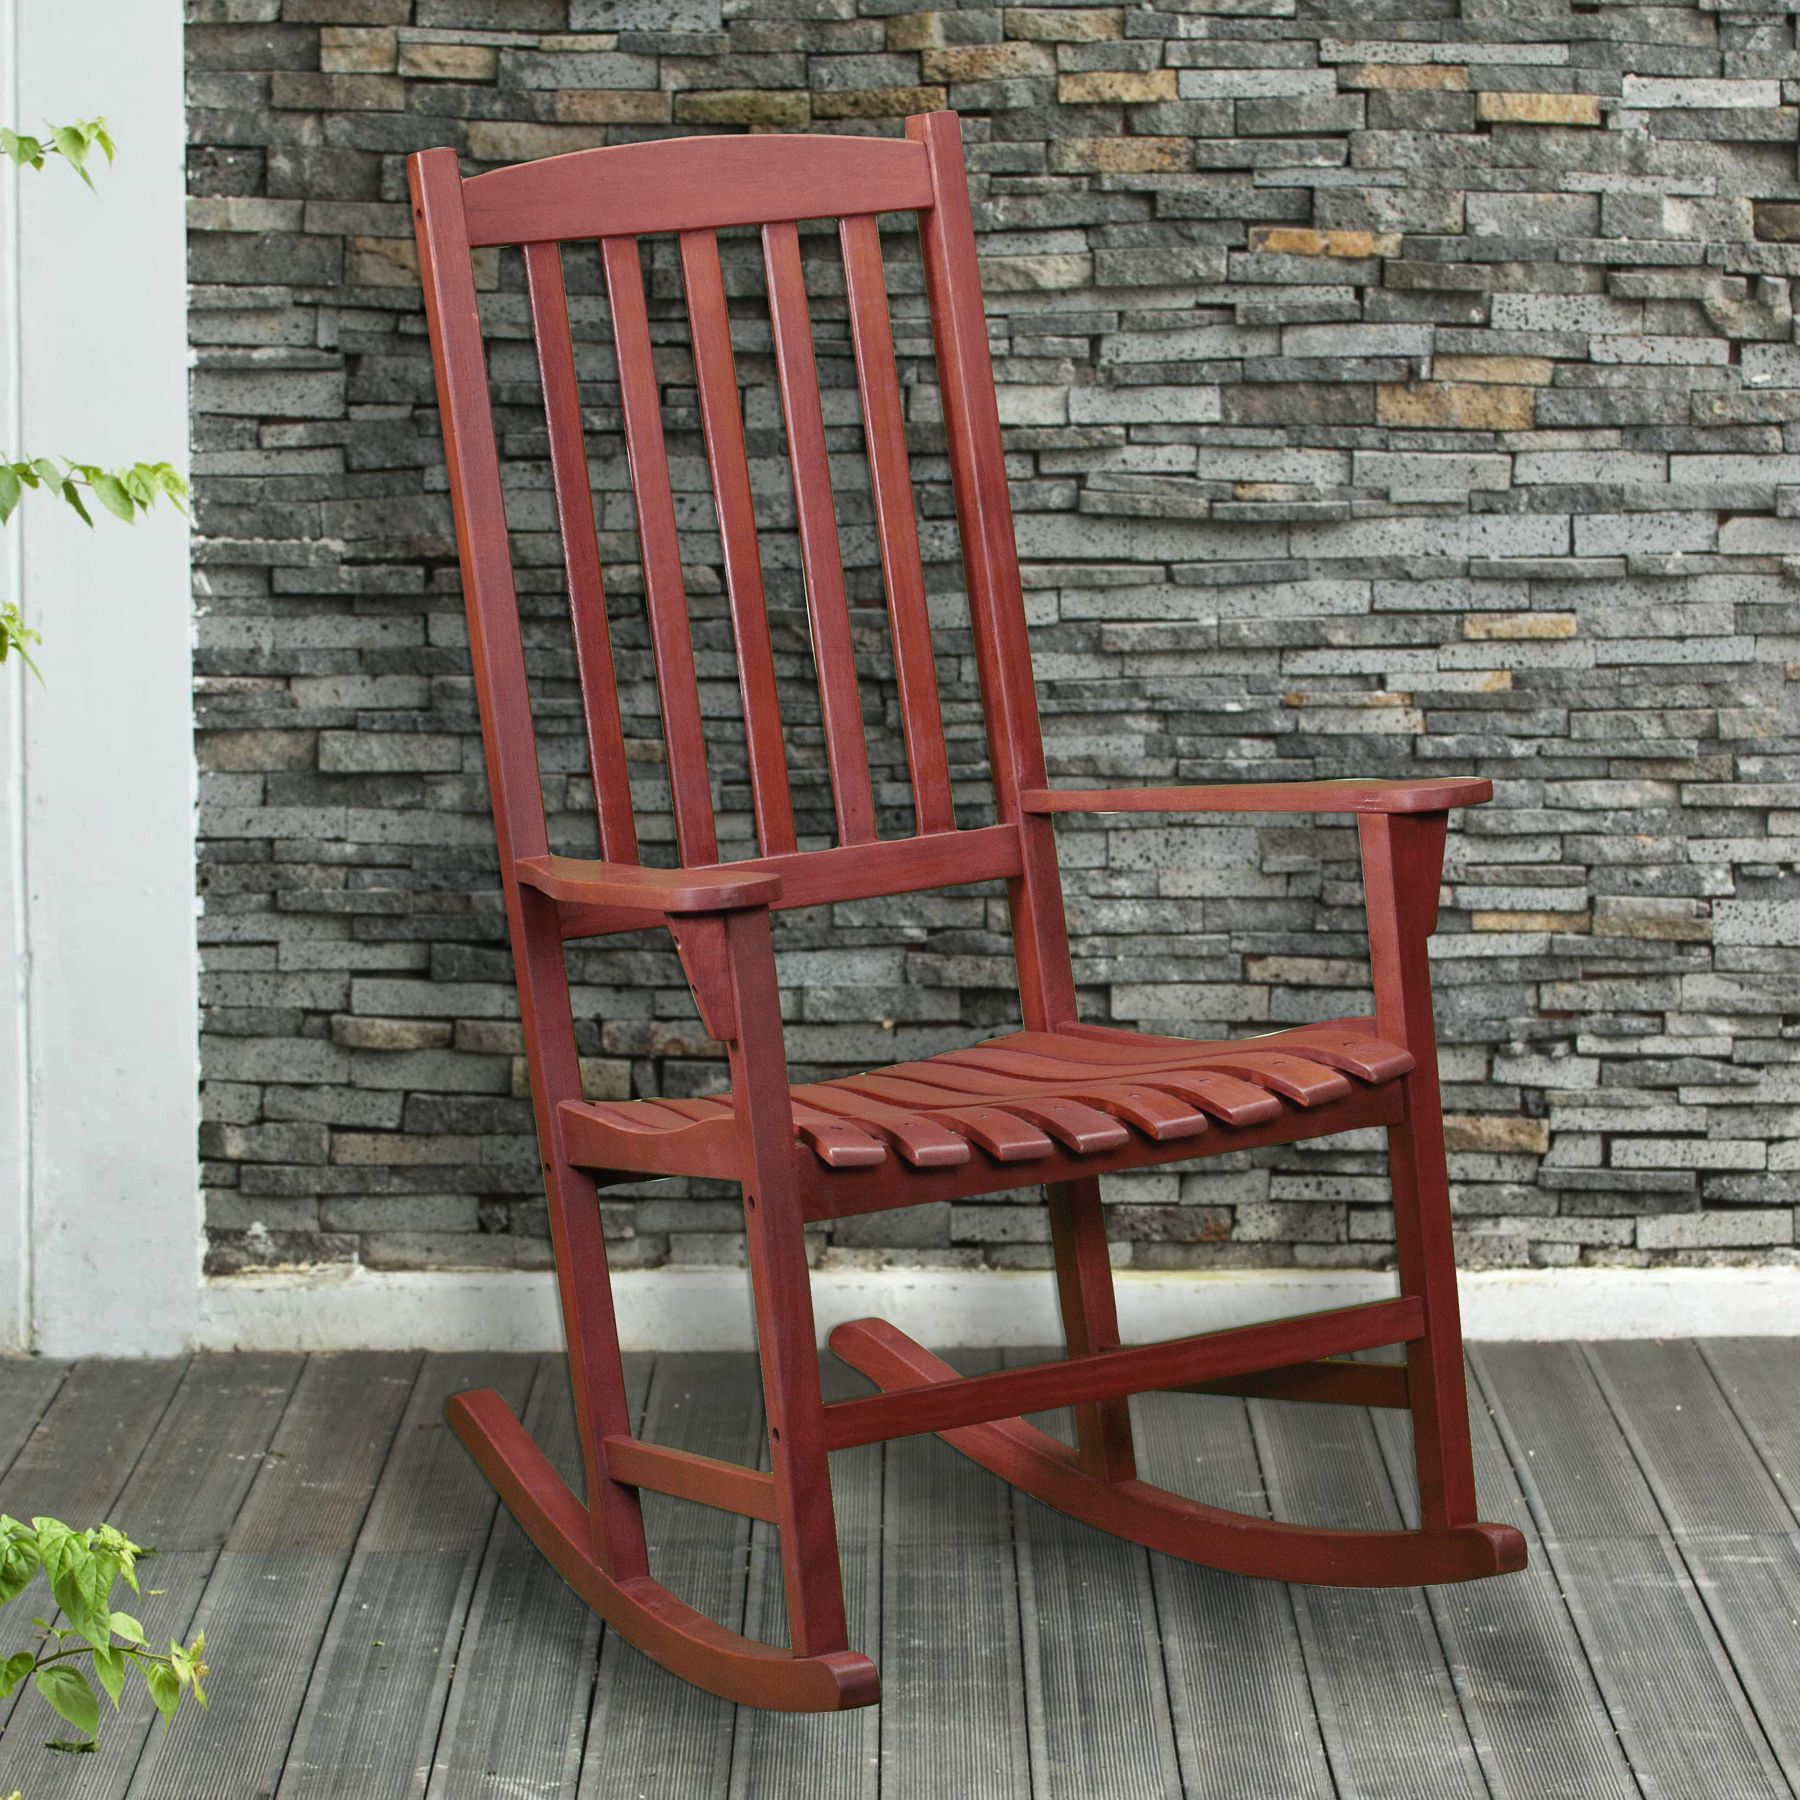 Sit pretty in this beautiful Upton Home hardwood rocker! The rich dark brown color of the natural oiled finish will be the perfect addition to your patio, sunroom or deck. Features a curved seat for added comfort and an airy slated design for quick drying